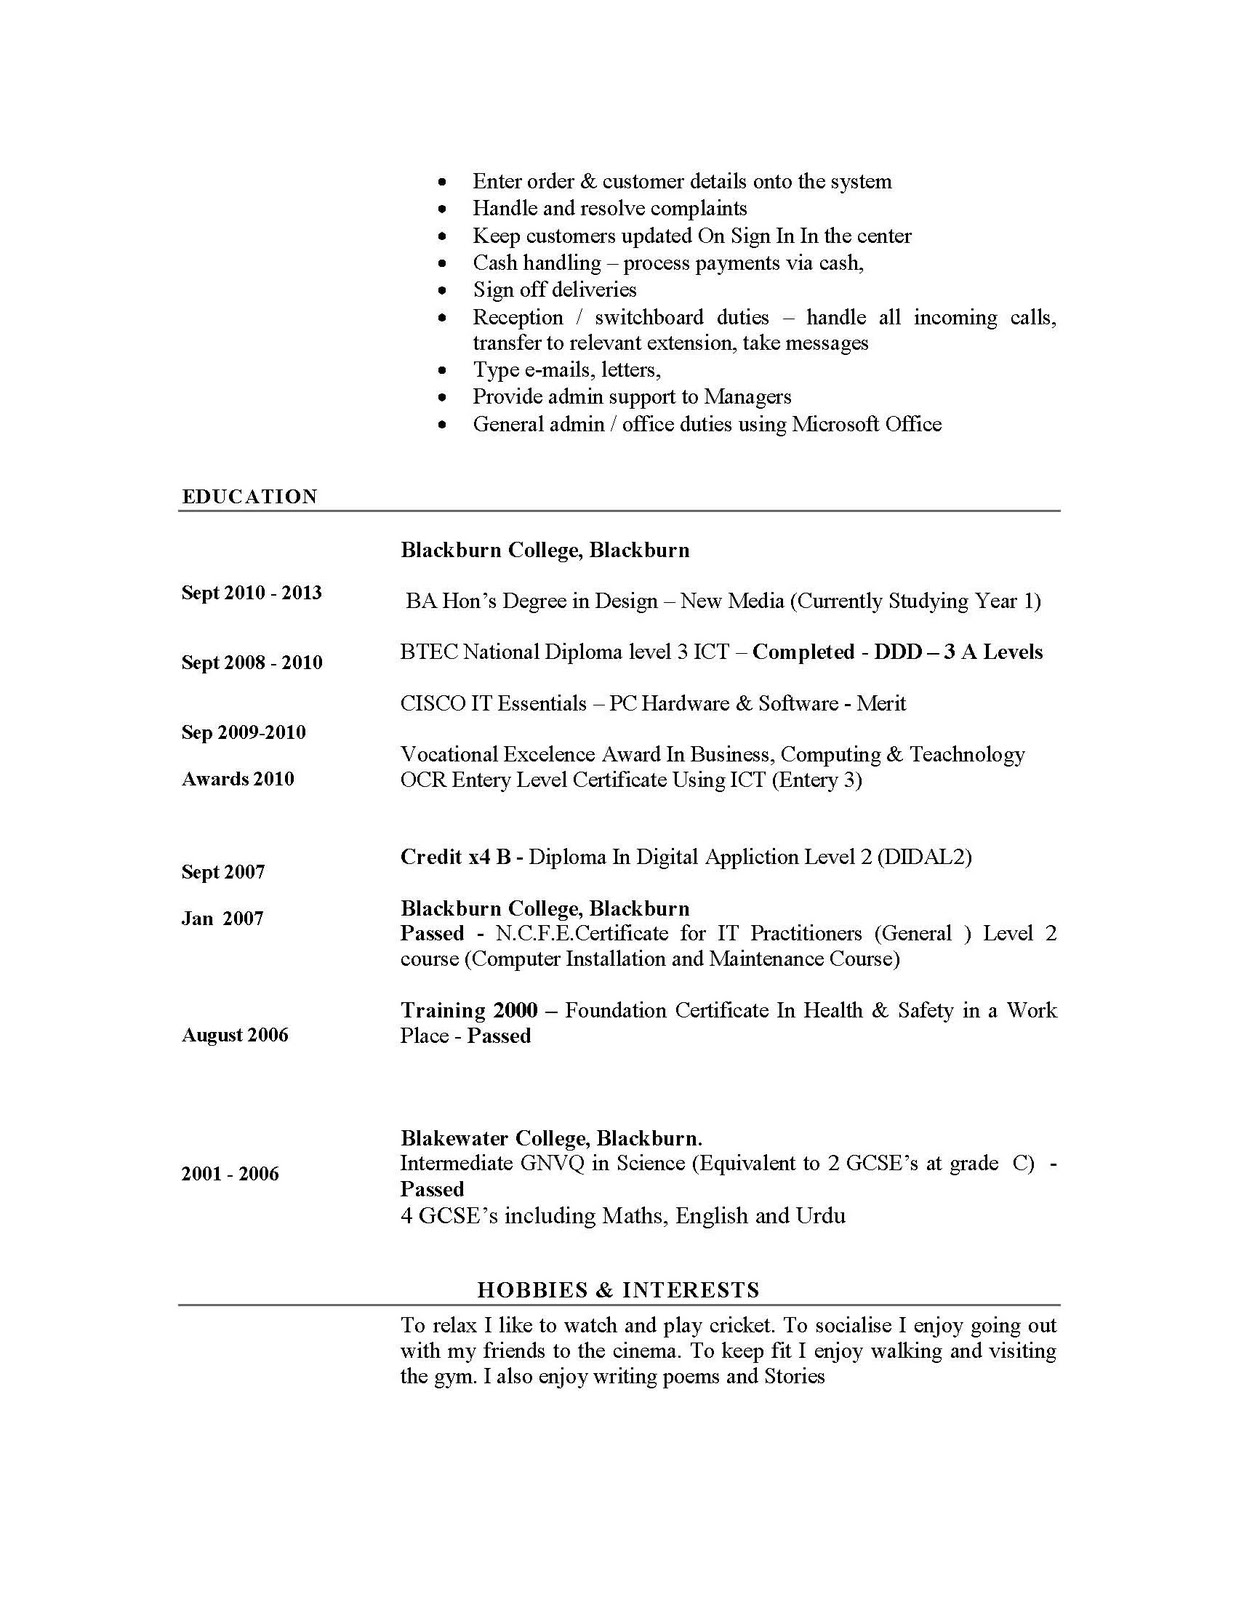 Essay research - The Lodges of Colorado Springs resume biodata ...